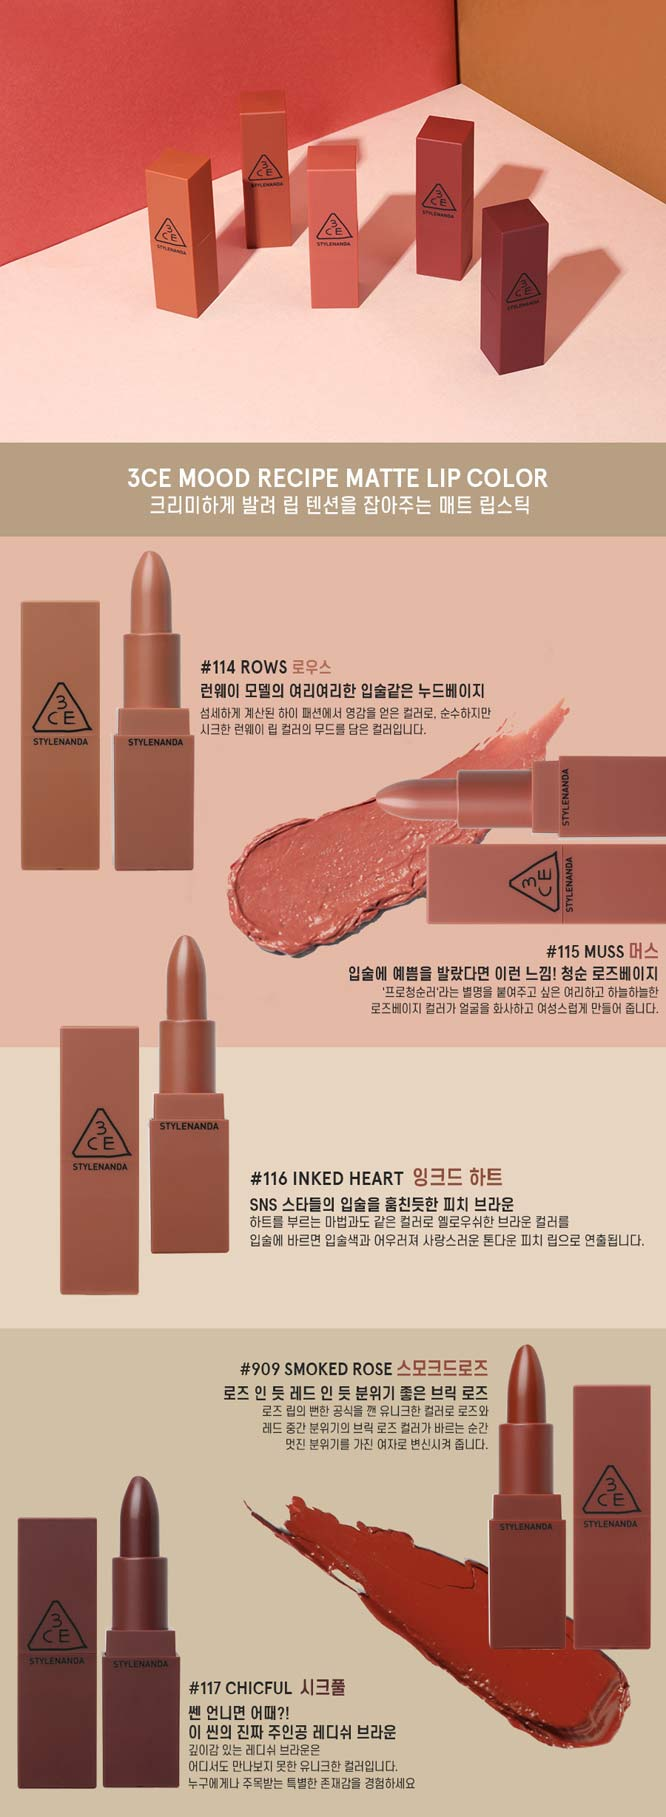 3CE Mood Recipe Matte Lip Color #116_1